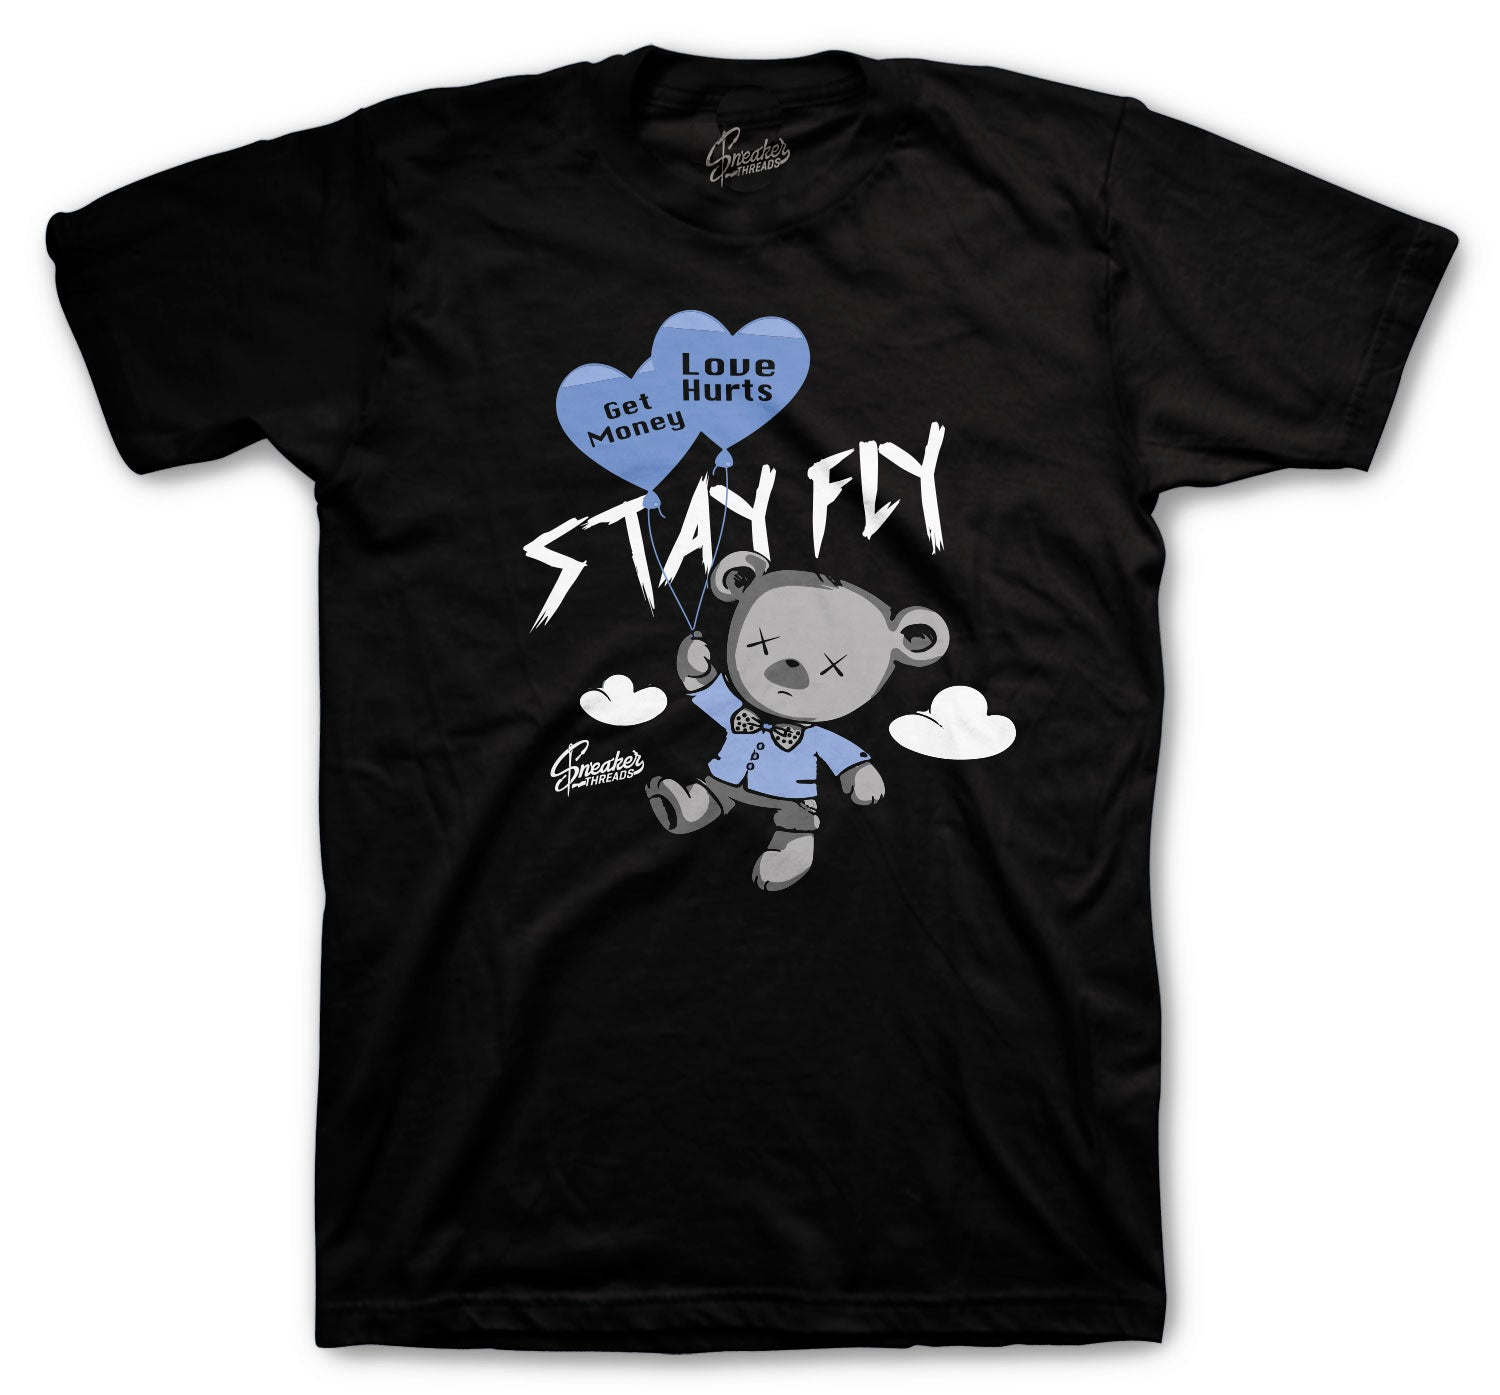 Jordan 3 UNC Shirt - Money Over Love - Black